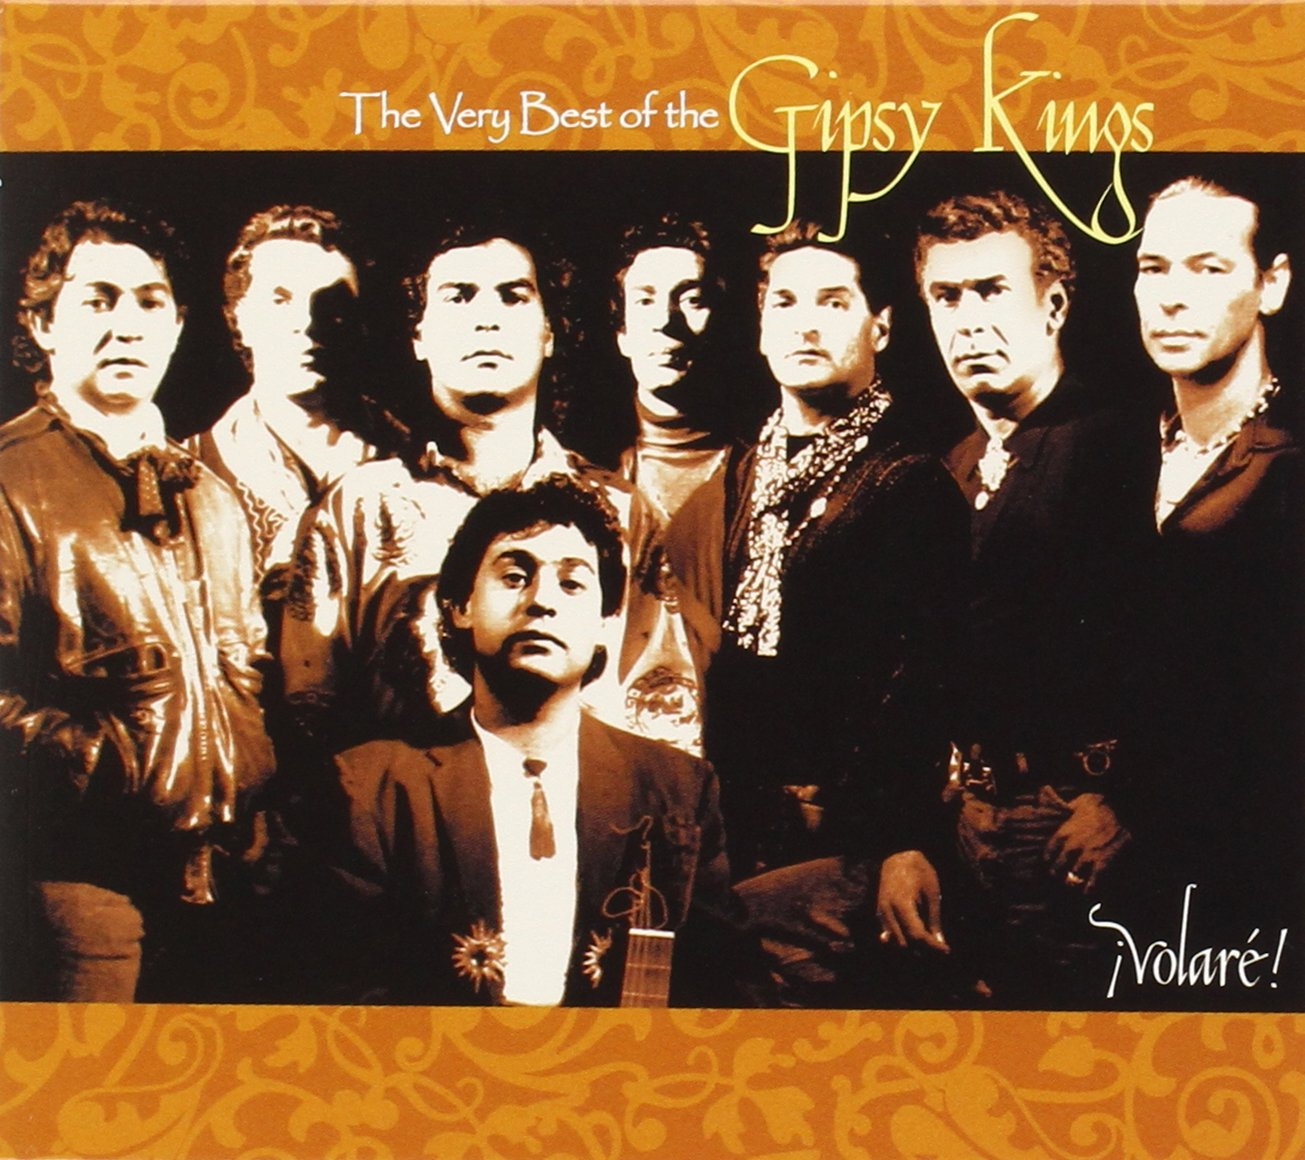 Volare! - The Very Best Of The Gipsy Kings : WDM 2975